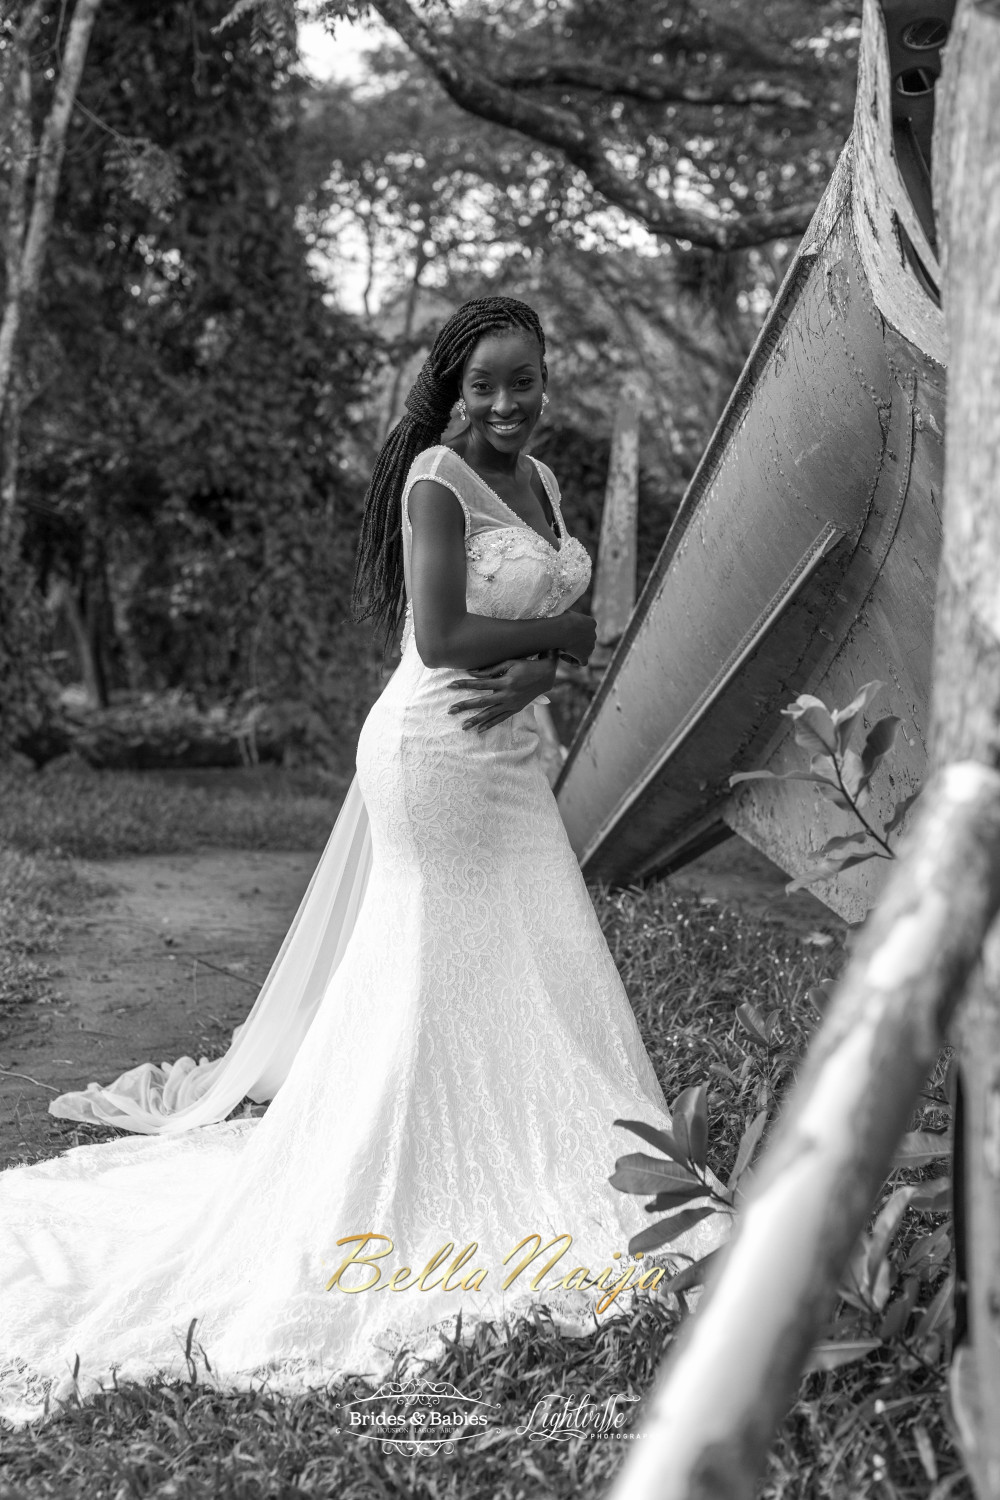 Brides & Babies Wedding Dresses 2015 on BellaNaija019